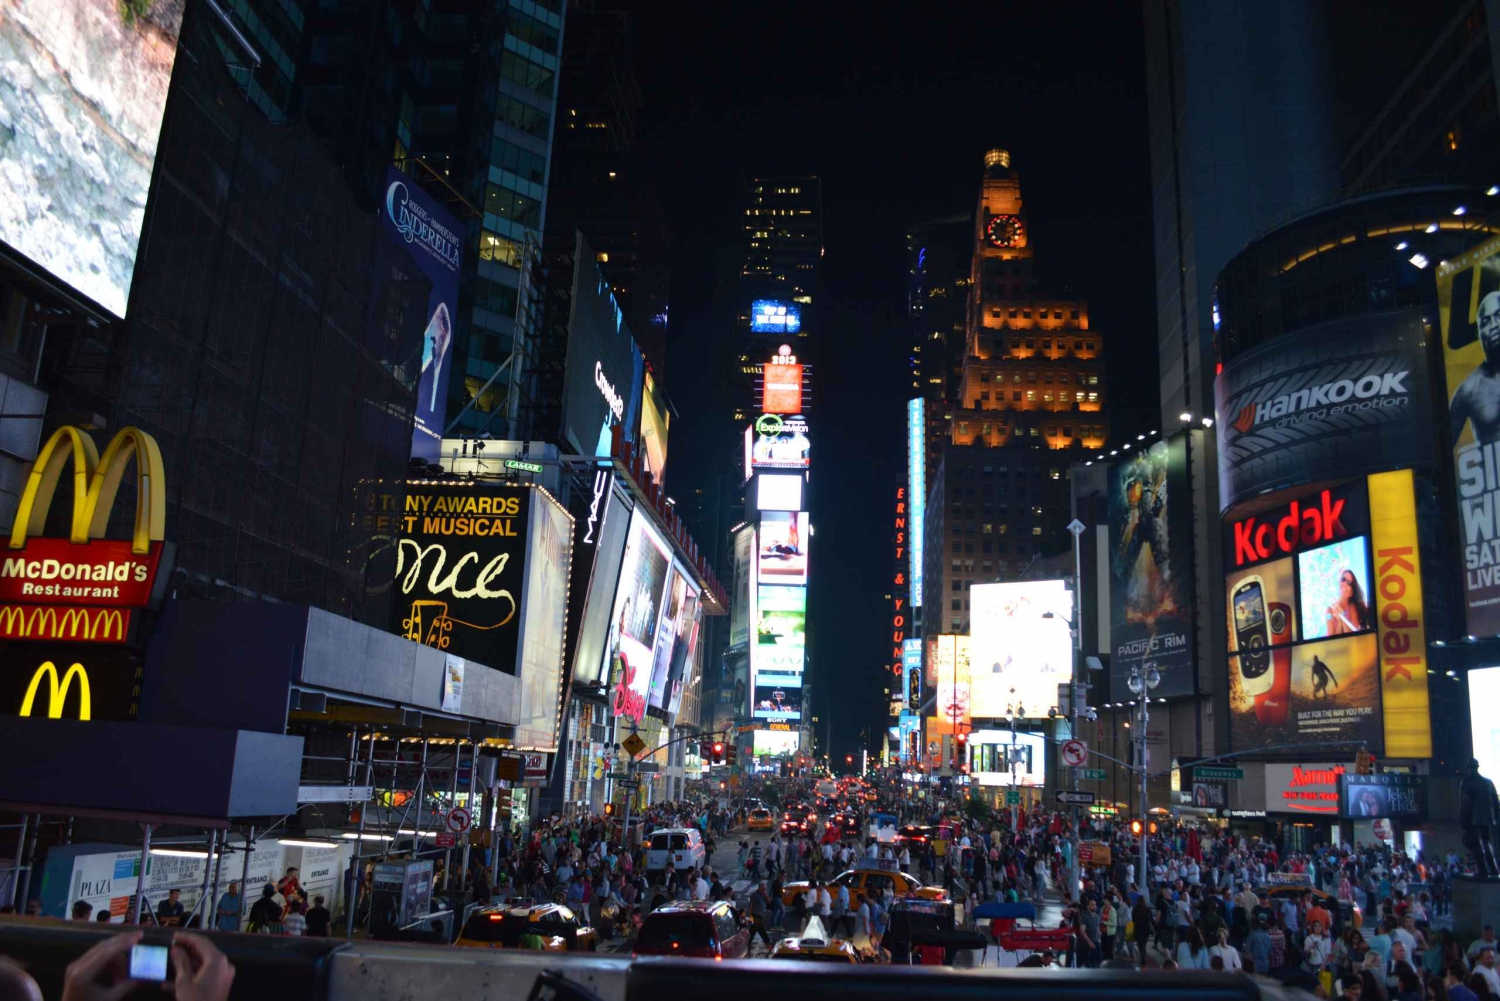 New York City: Times Square New Year's Eve Celebration